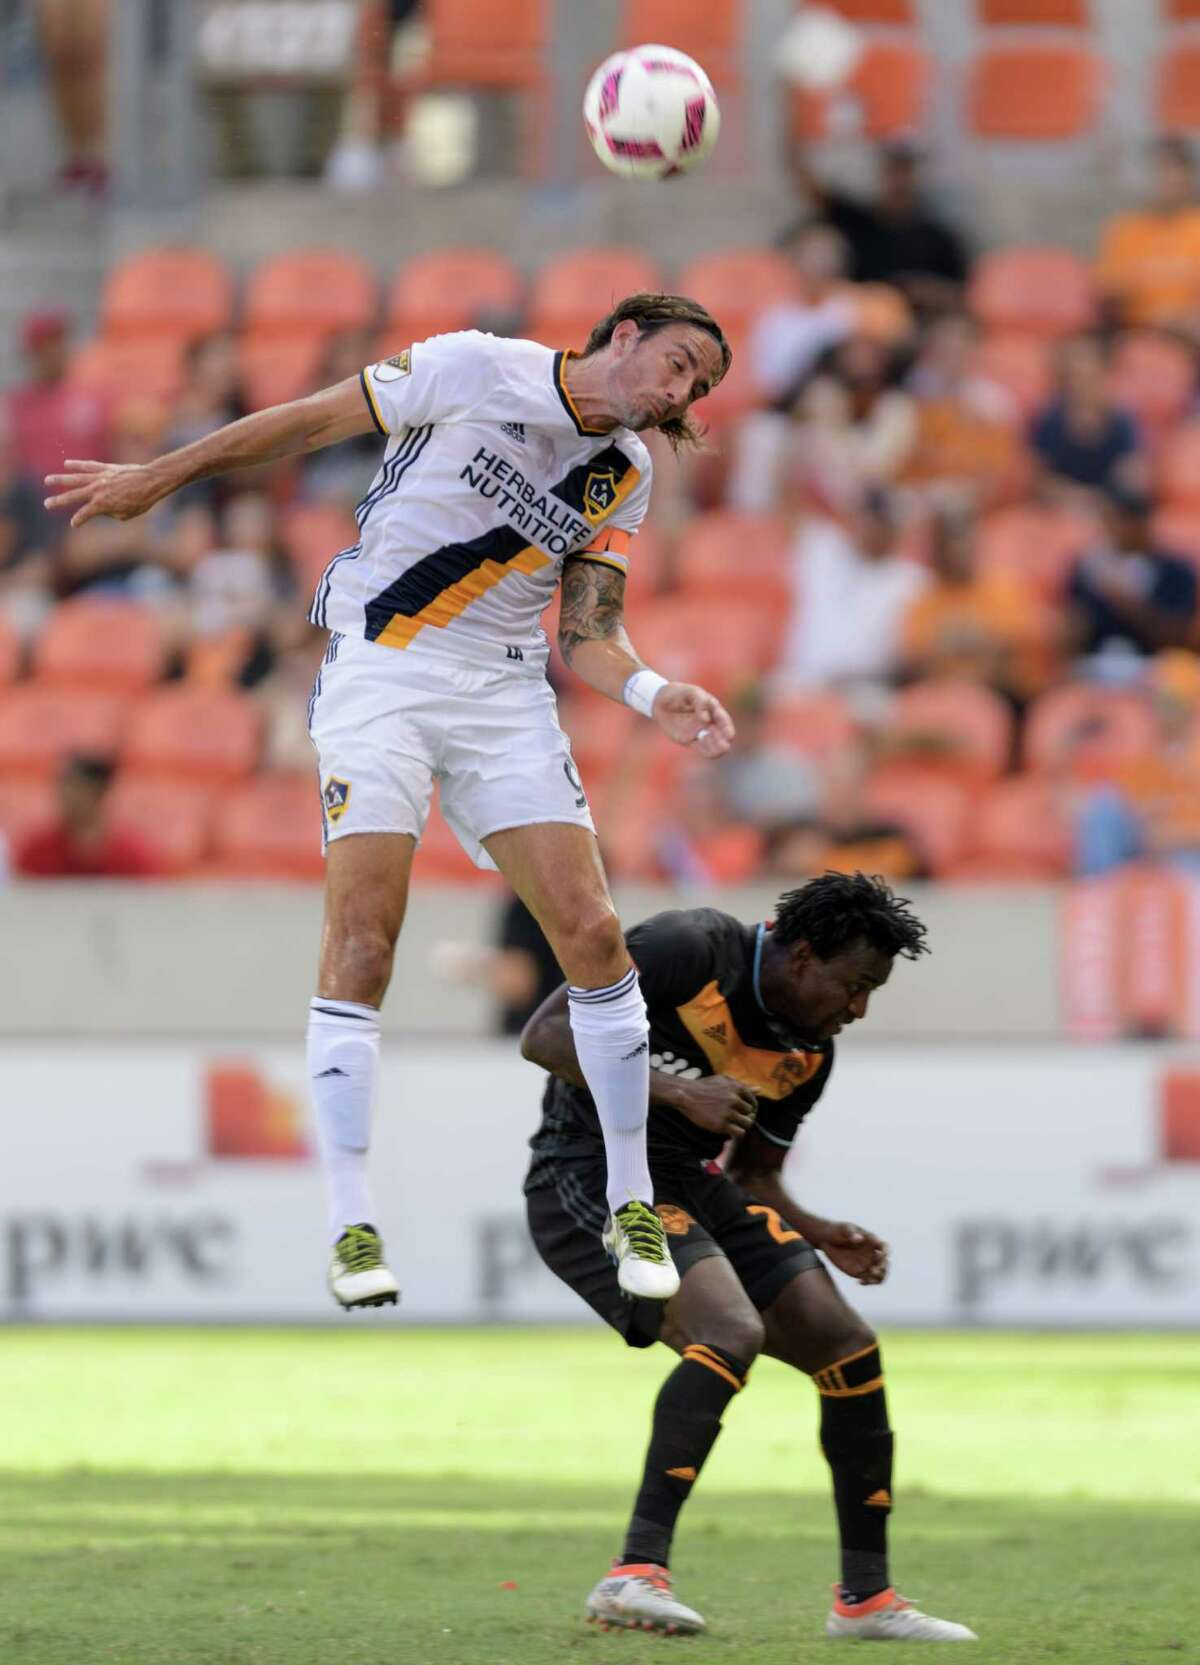 Alan Gordon (9) of the LA Galaxy wins a header over Abdoulie Mansally (20) of the Houston Dynamo in the first half in an MLS game on Sunday, October 16, 2016 at BBVA Compass Stadium in Houston Texas.